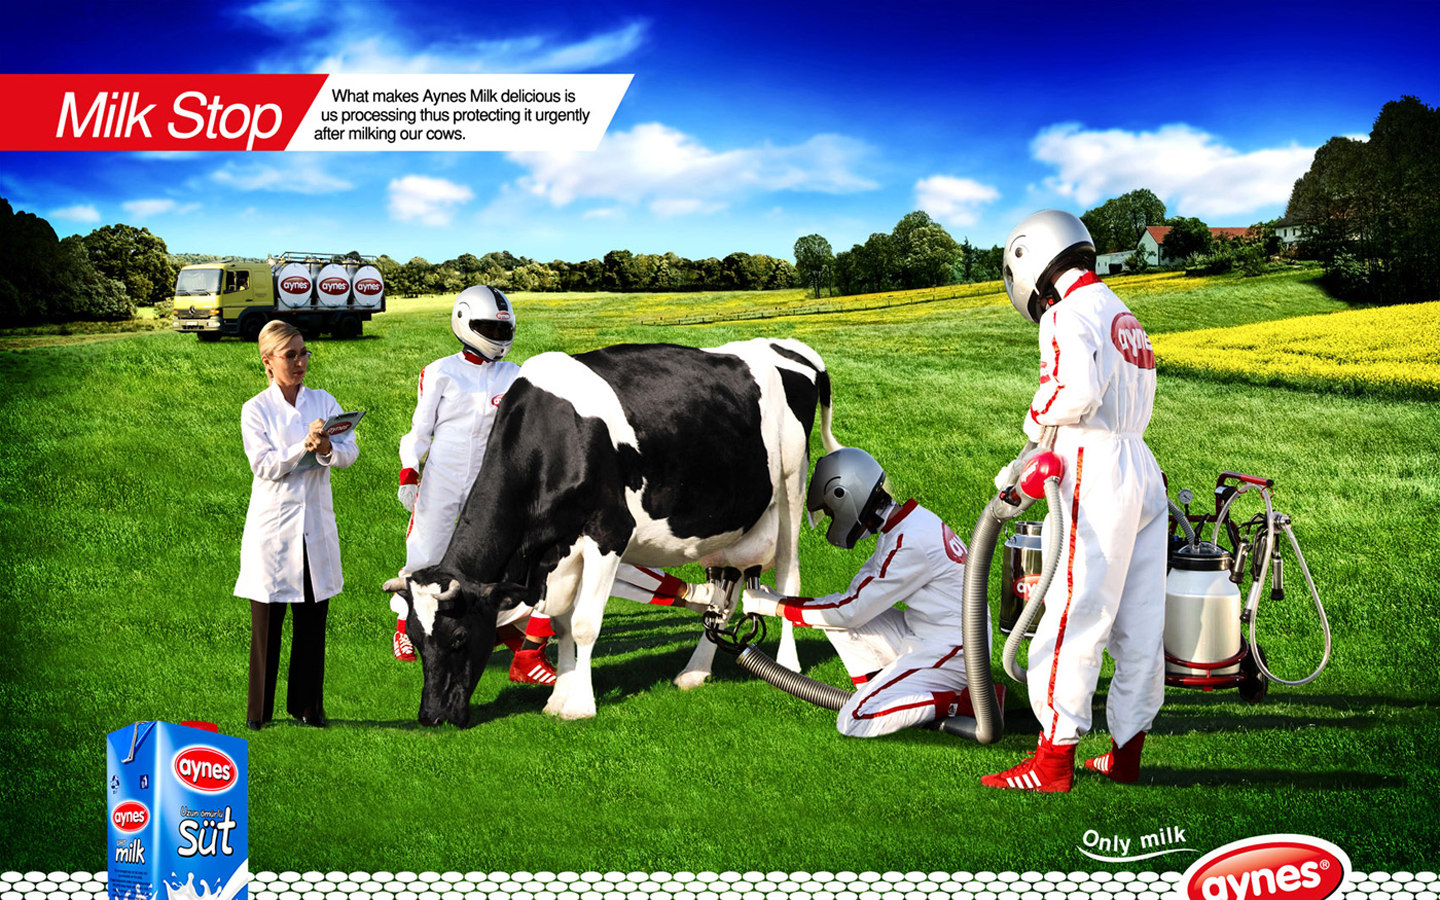 AYNES milk advertising 28748